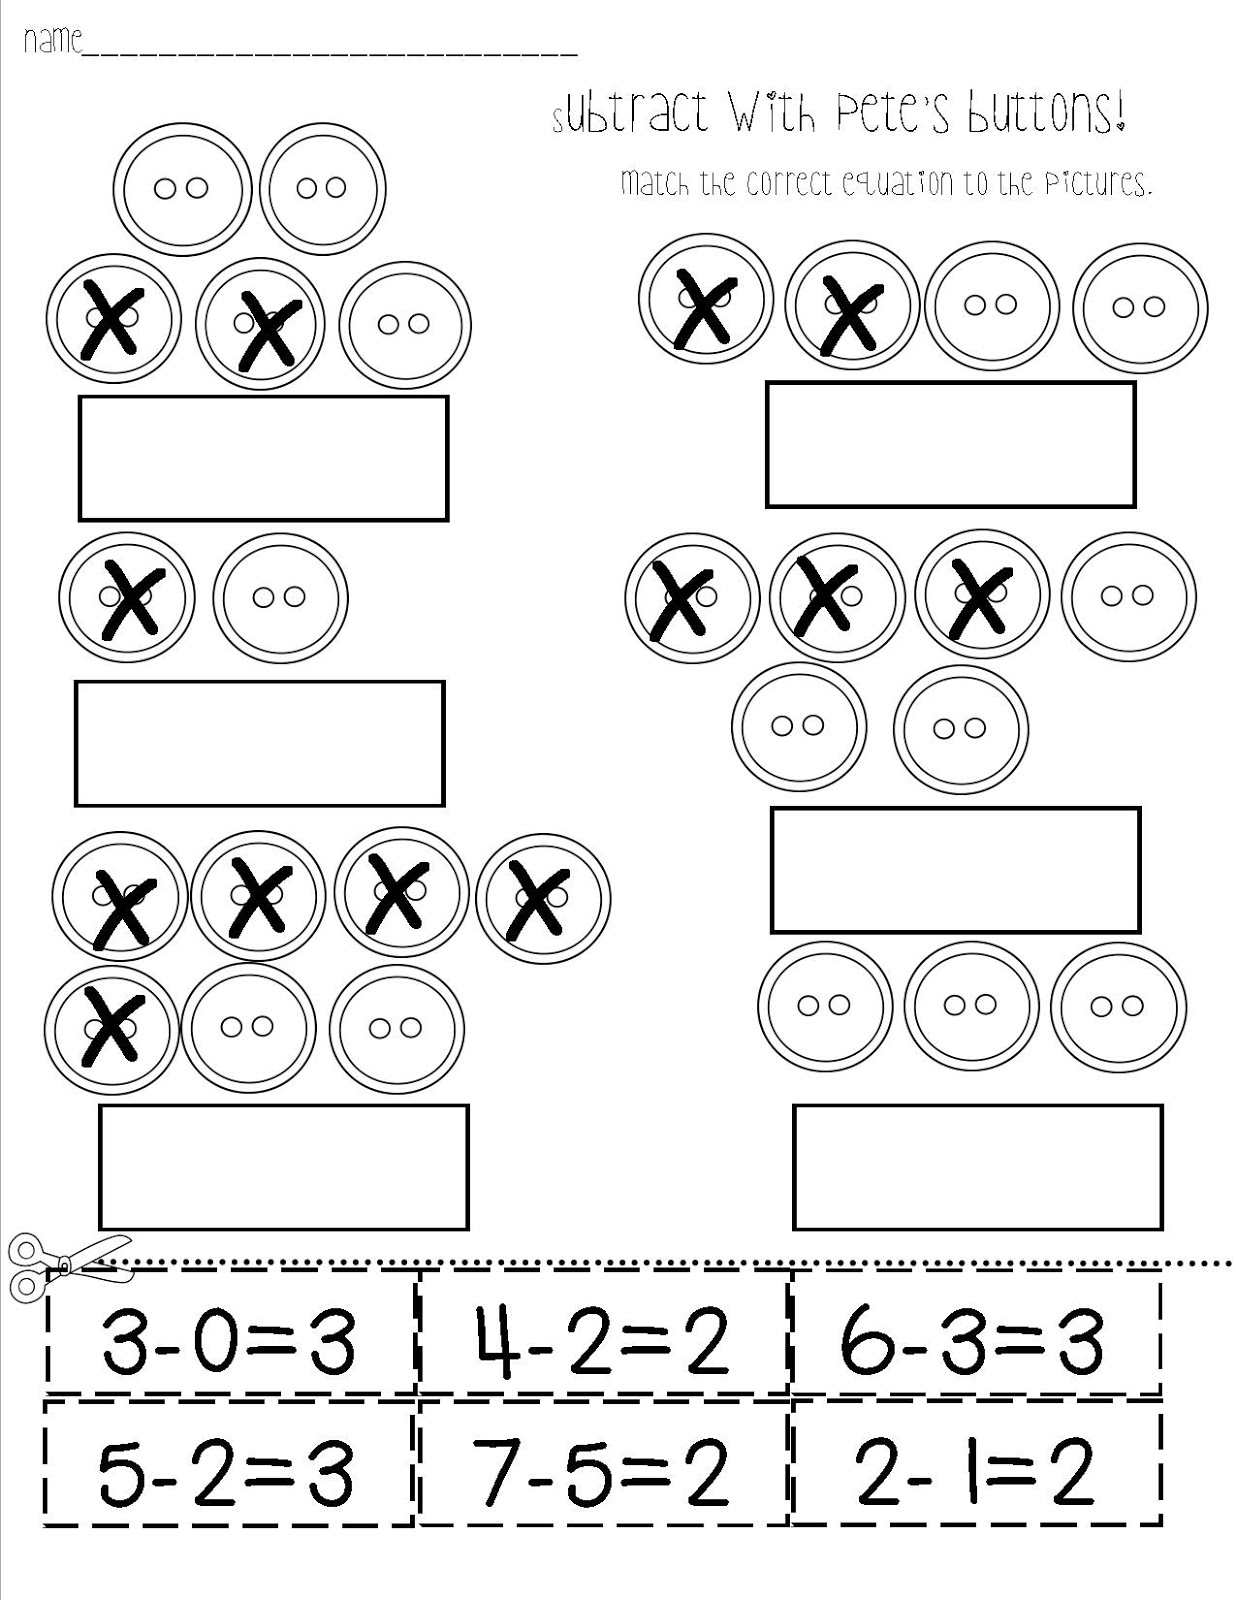 Worksheets Pete The Cat Worksheets mrs bohatys kindergarten kingdom subtract with pete just click on petes buttons to get your copy of this worksheet